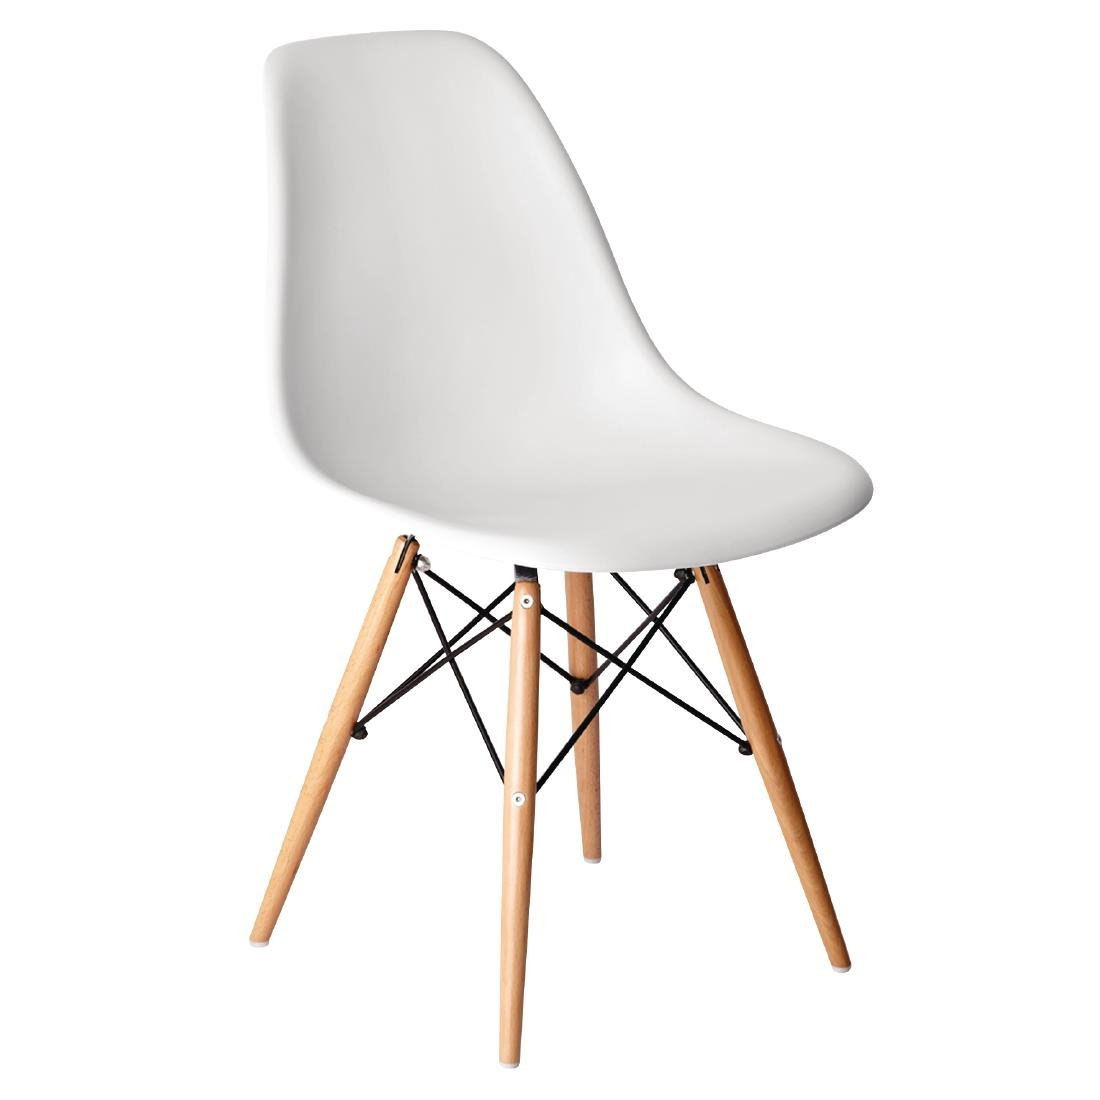 Remarkable Bolero White Polypropylene Replica Eames Chairs Pack Of 2 Ibusinesslaw Wood Chair Design Ideas Ibusinesslaworg